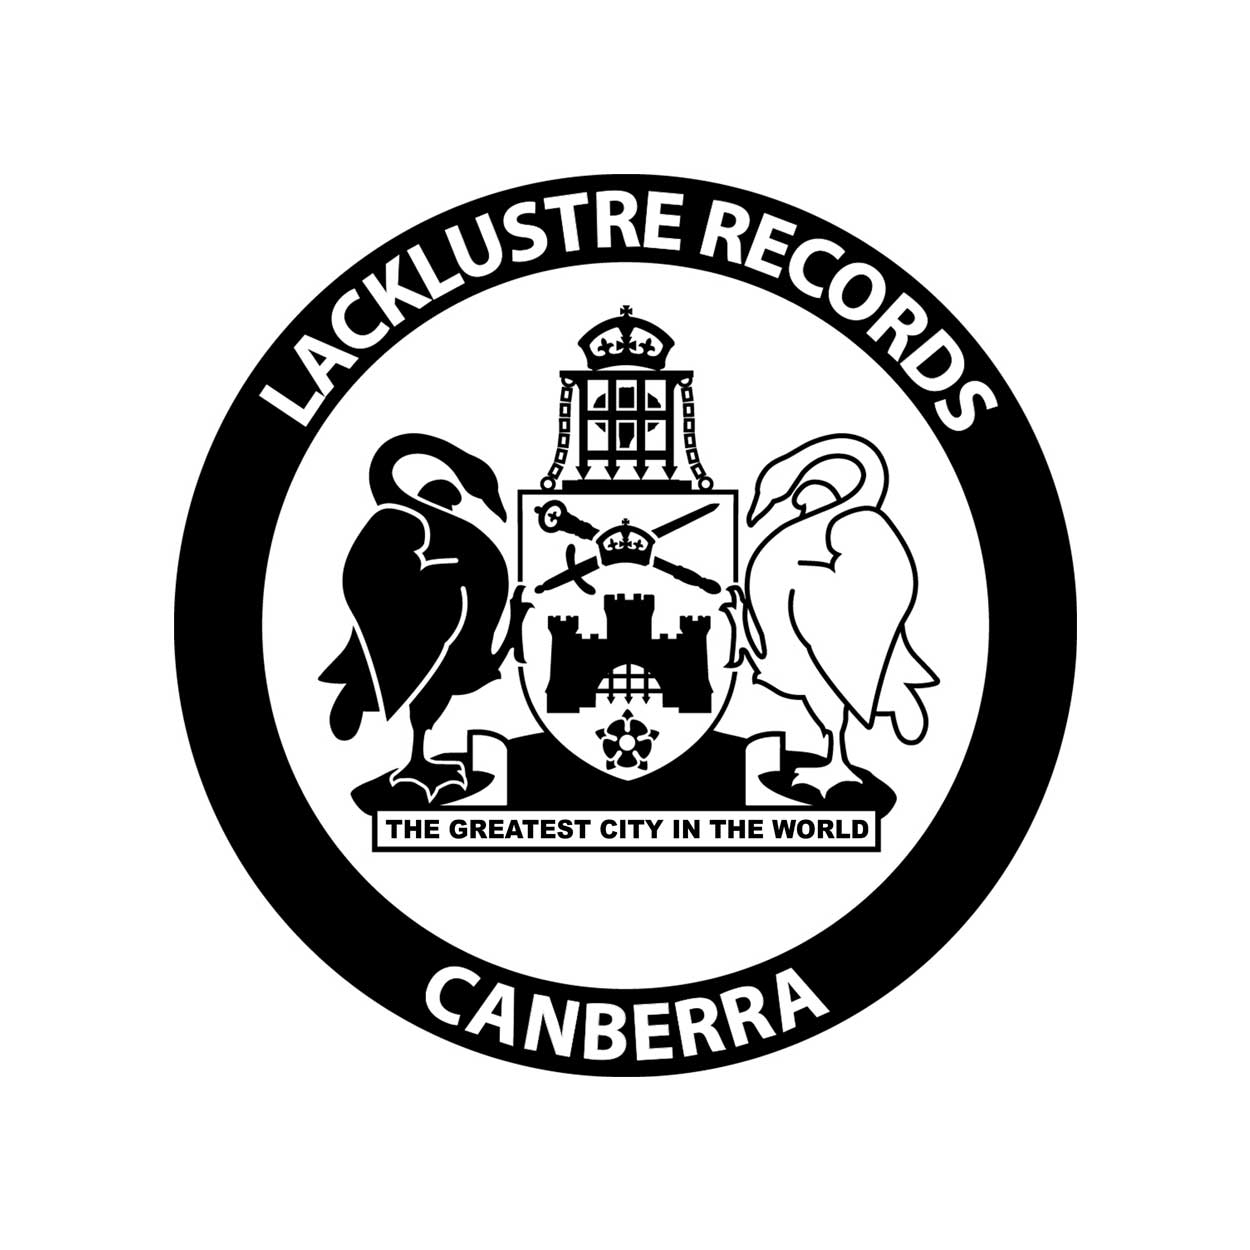 Lacklustre Records  is an independent record label from Canberra, focusing on nothing in particular, with a catalogue that spans countries and genres. Rooted in the ethos of punk, hardcore and DIY. They'll be selling an eclectic mix of records, most likely a zine or two, cd-rs, cassettes and maybe some screenprinted t-shirts or tote bags, depending on how much ink they have left.  Find out more here.